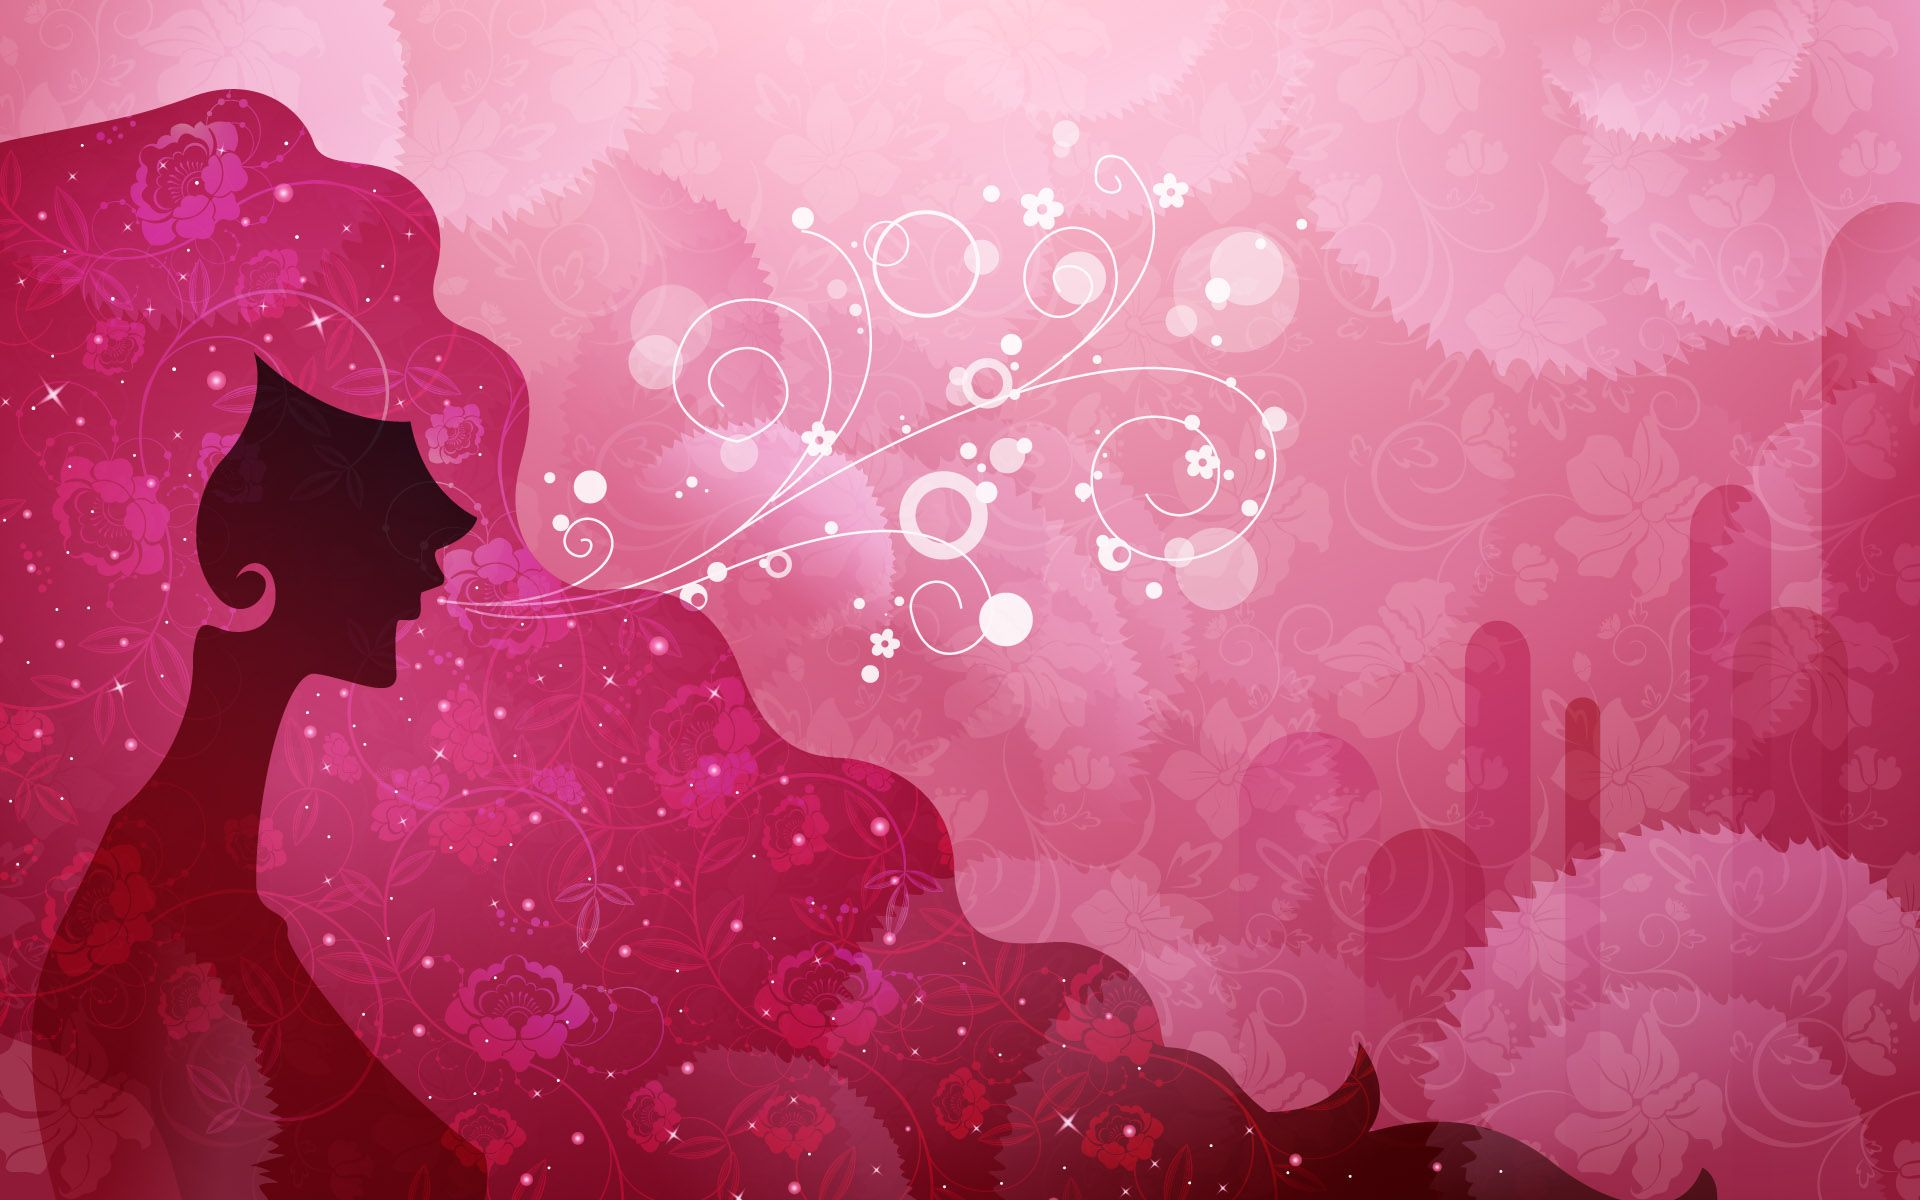 Cool Wallpaper High Quality Pink - pink-color-wallpaper_112016680  Gallery_52616.jpg